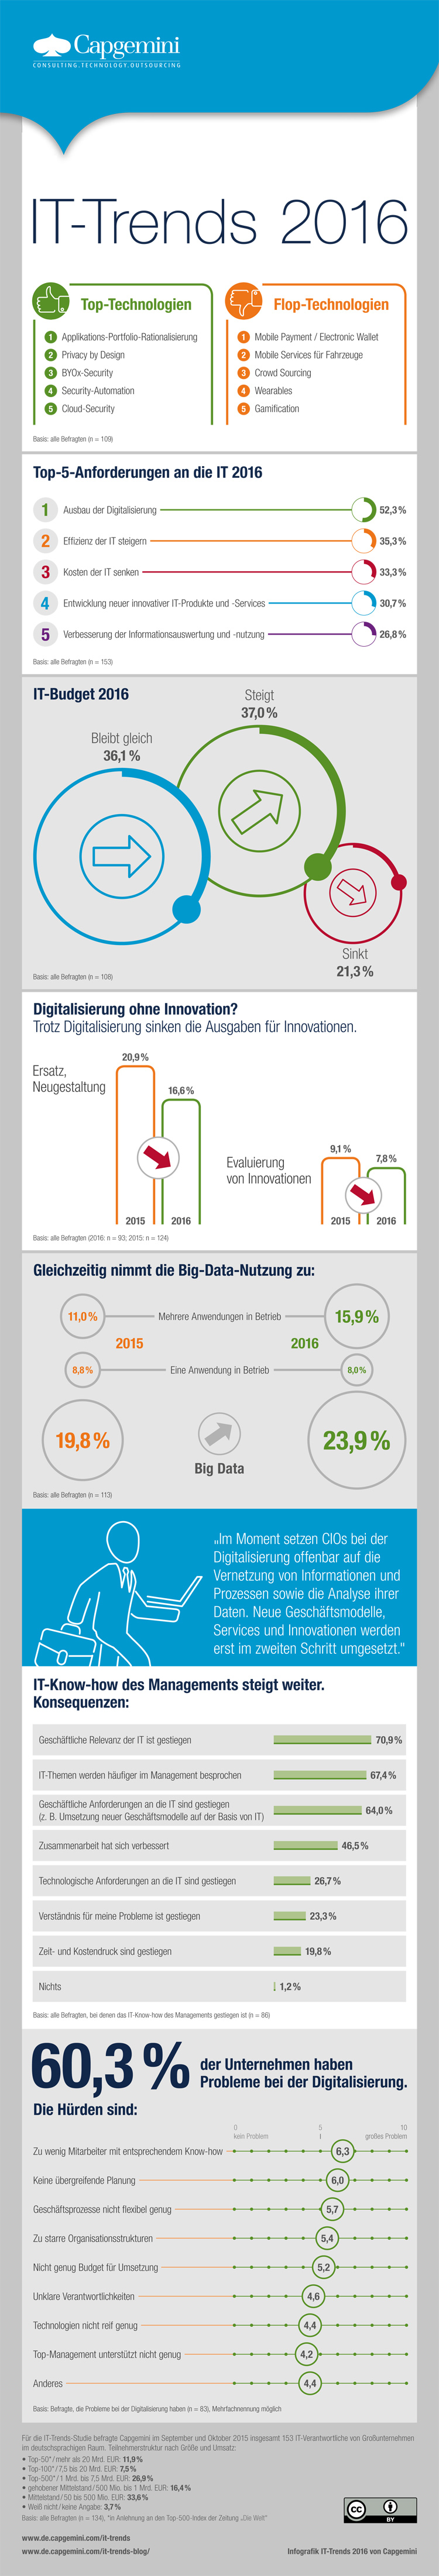 Infografik: Top IT-Trends 2016